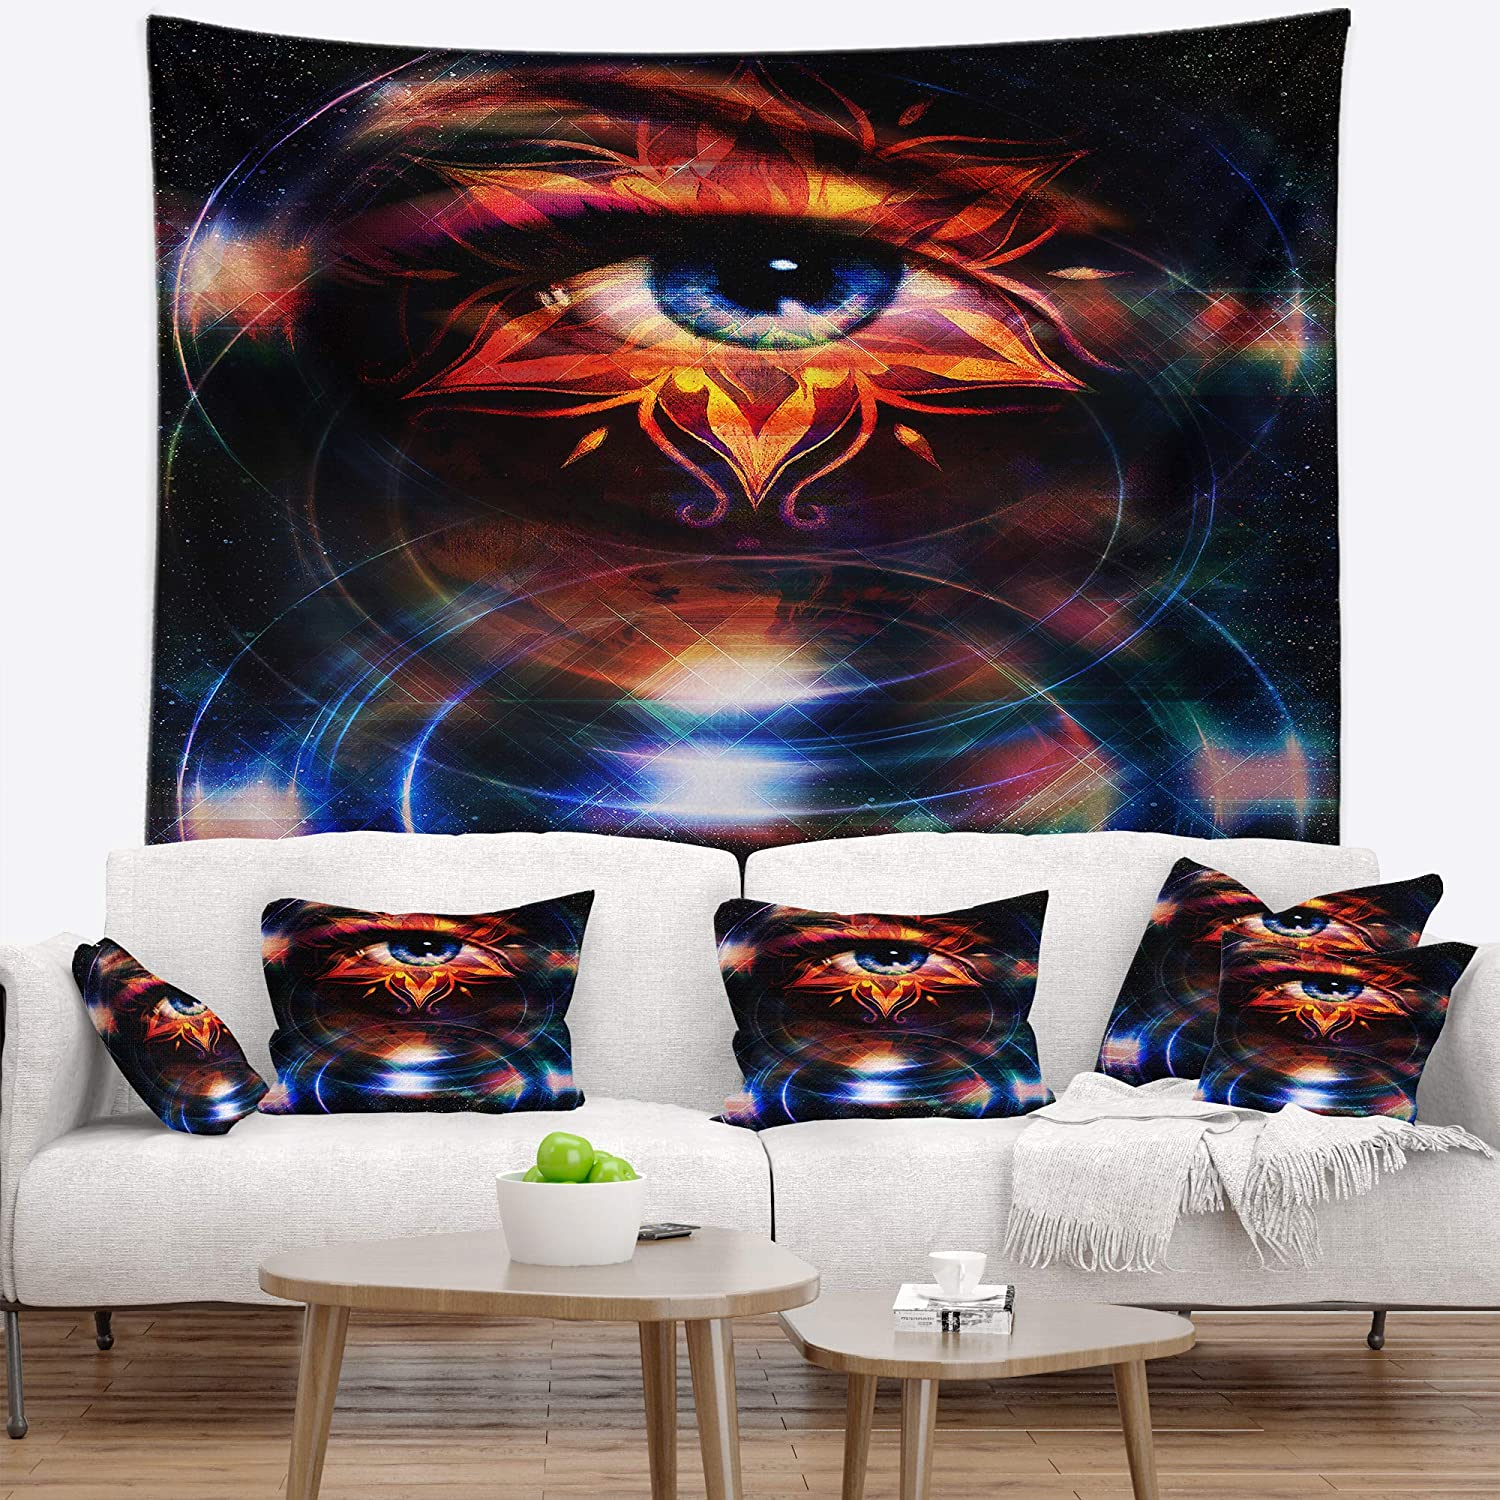 Designart TAP8704-68-80 ' Woman Eye with Fractal Star' Floral Blanket Décor Art for Home and Office Wall Tapestry XX-Large: 68 in. x 80 in. Created On Lightweight Polyester Fabric